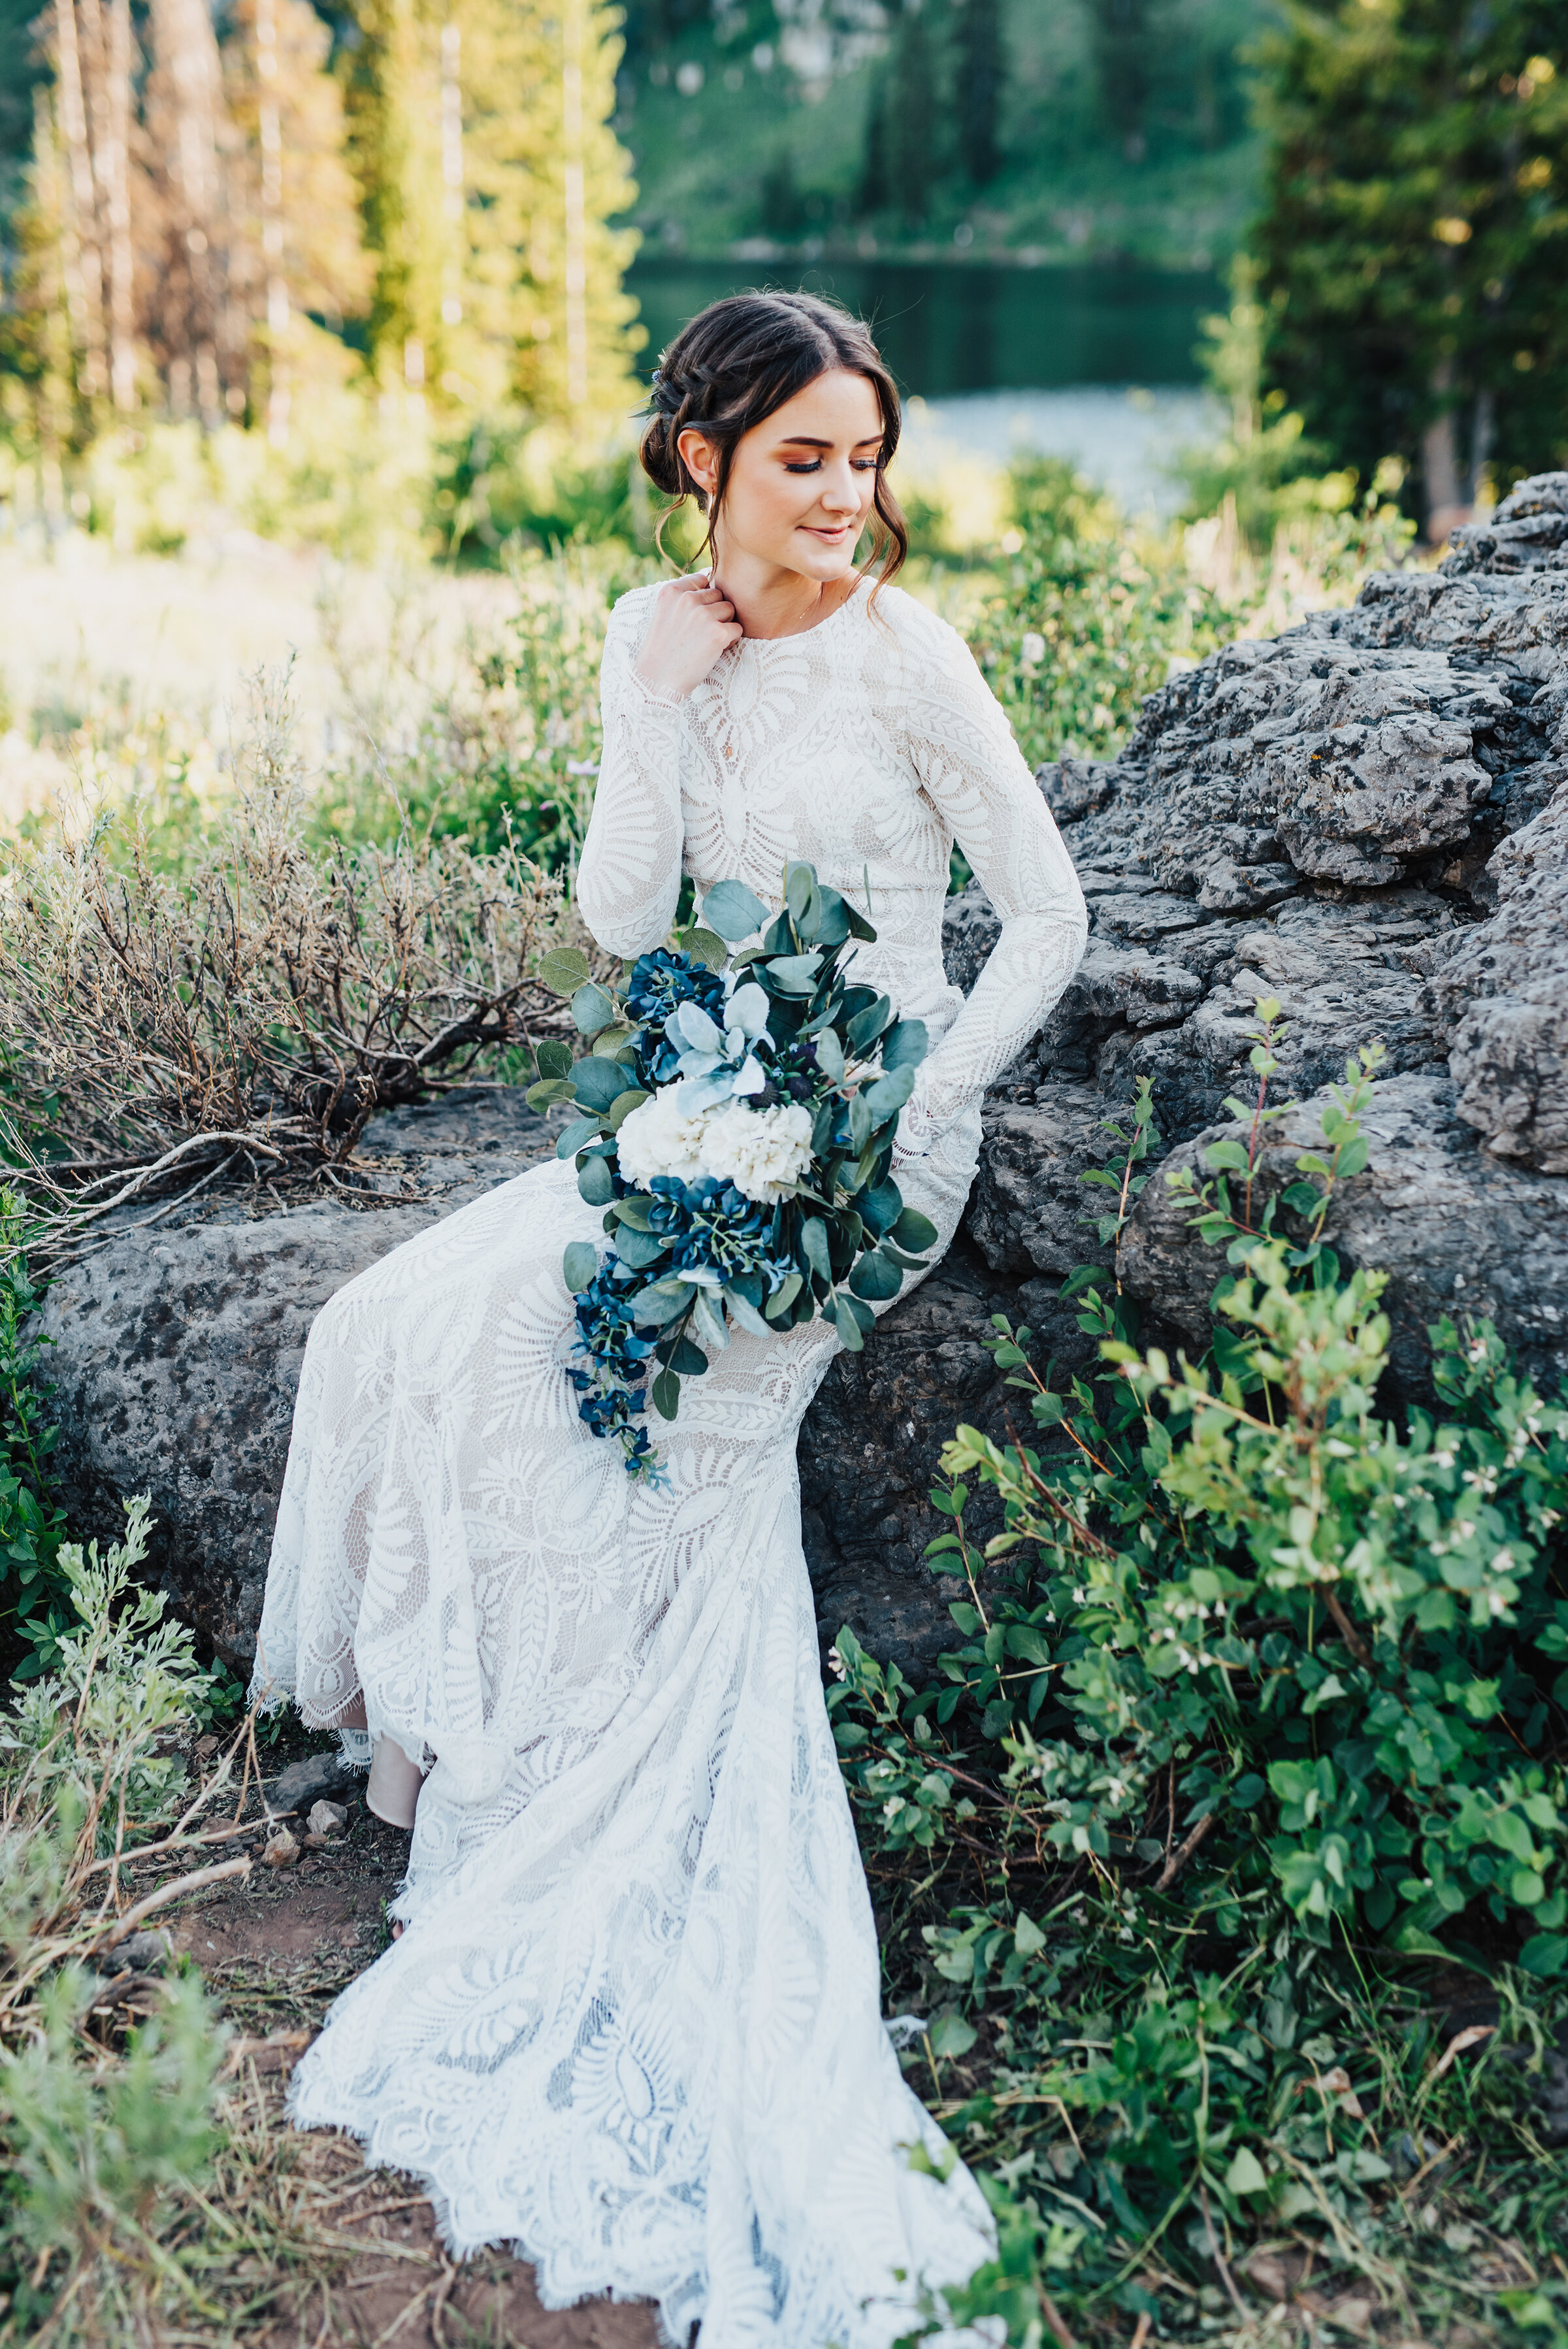 Glowing bride holding handpicked greenery during this lovely bridal session up Logan canyon. Kristi Alyse photography Logan Utah wedding photographer forest nature dreamy formals Logan canyon Tony Grove scenic bridals Northern Utah photographer Utah brides bride and groom Cache Valley #kristialysephotography #loganutahphotographer #tonygrove #logancanyon #utahweddingphotographer #bridals #formals #wildflowers #northernutah #utahbrides